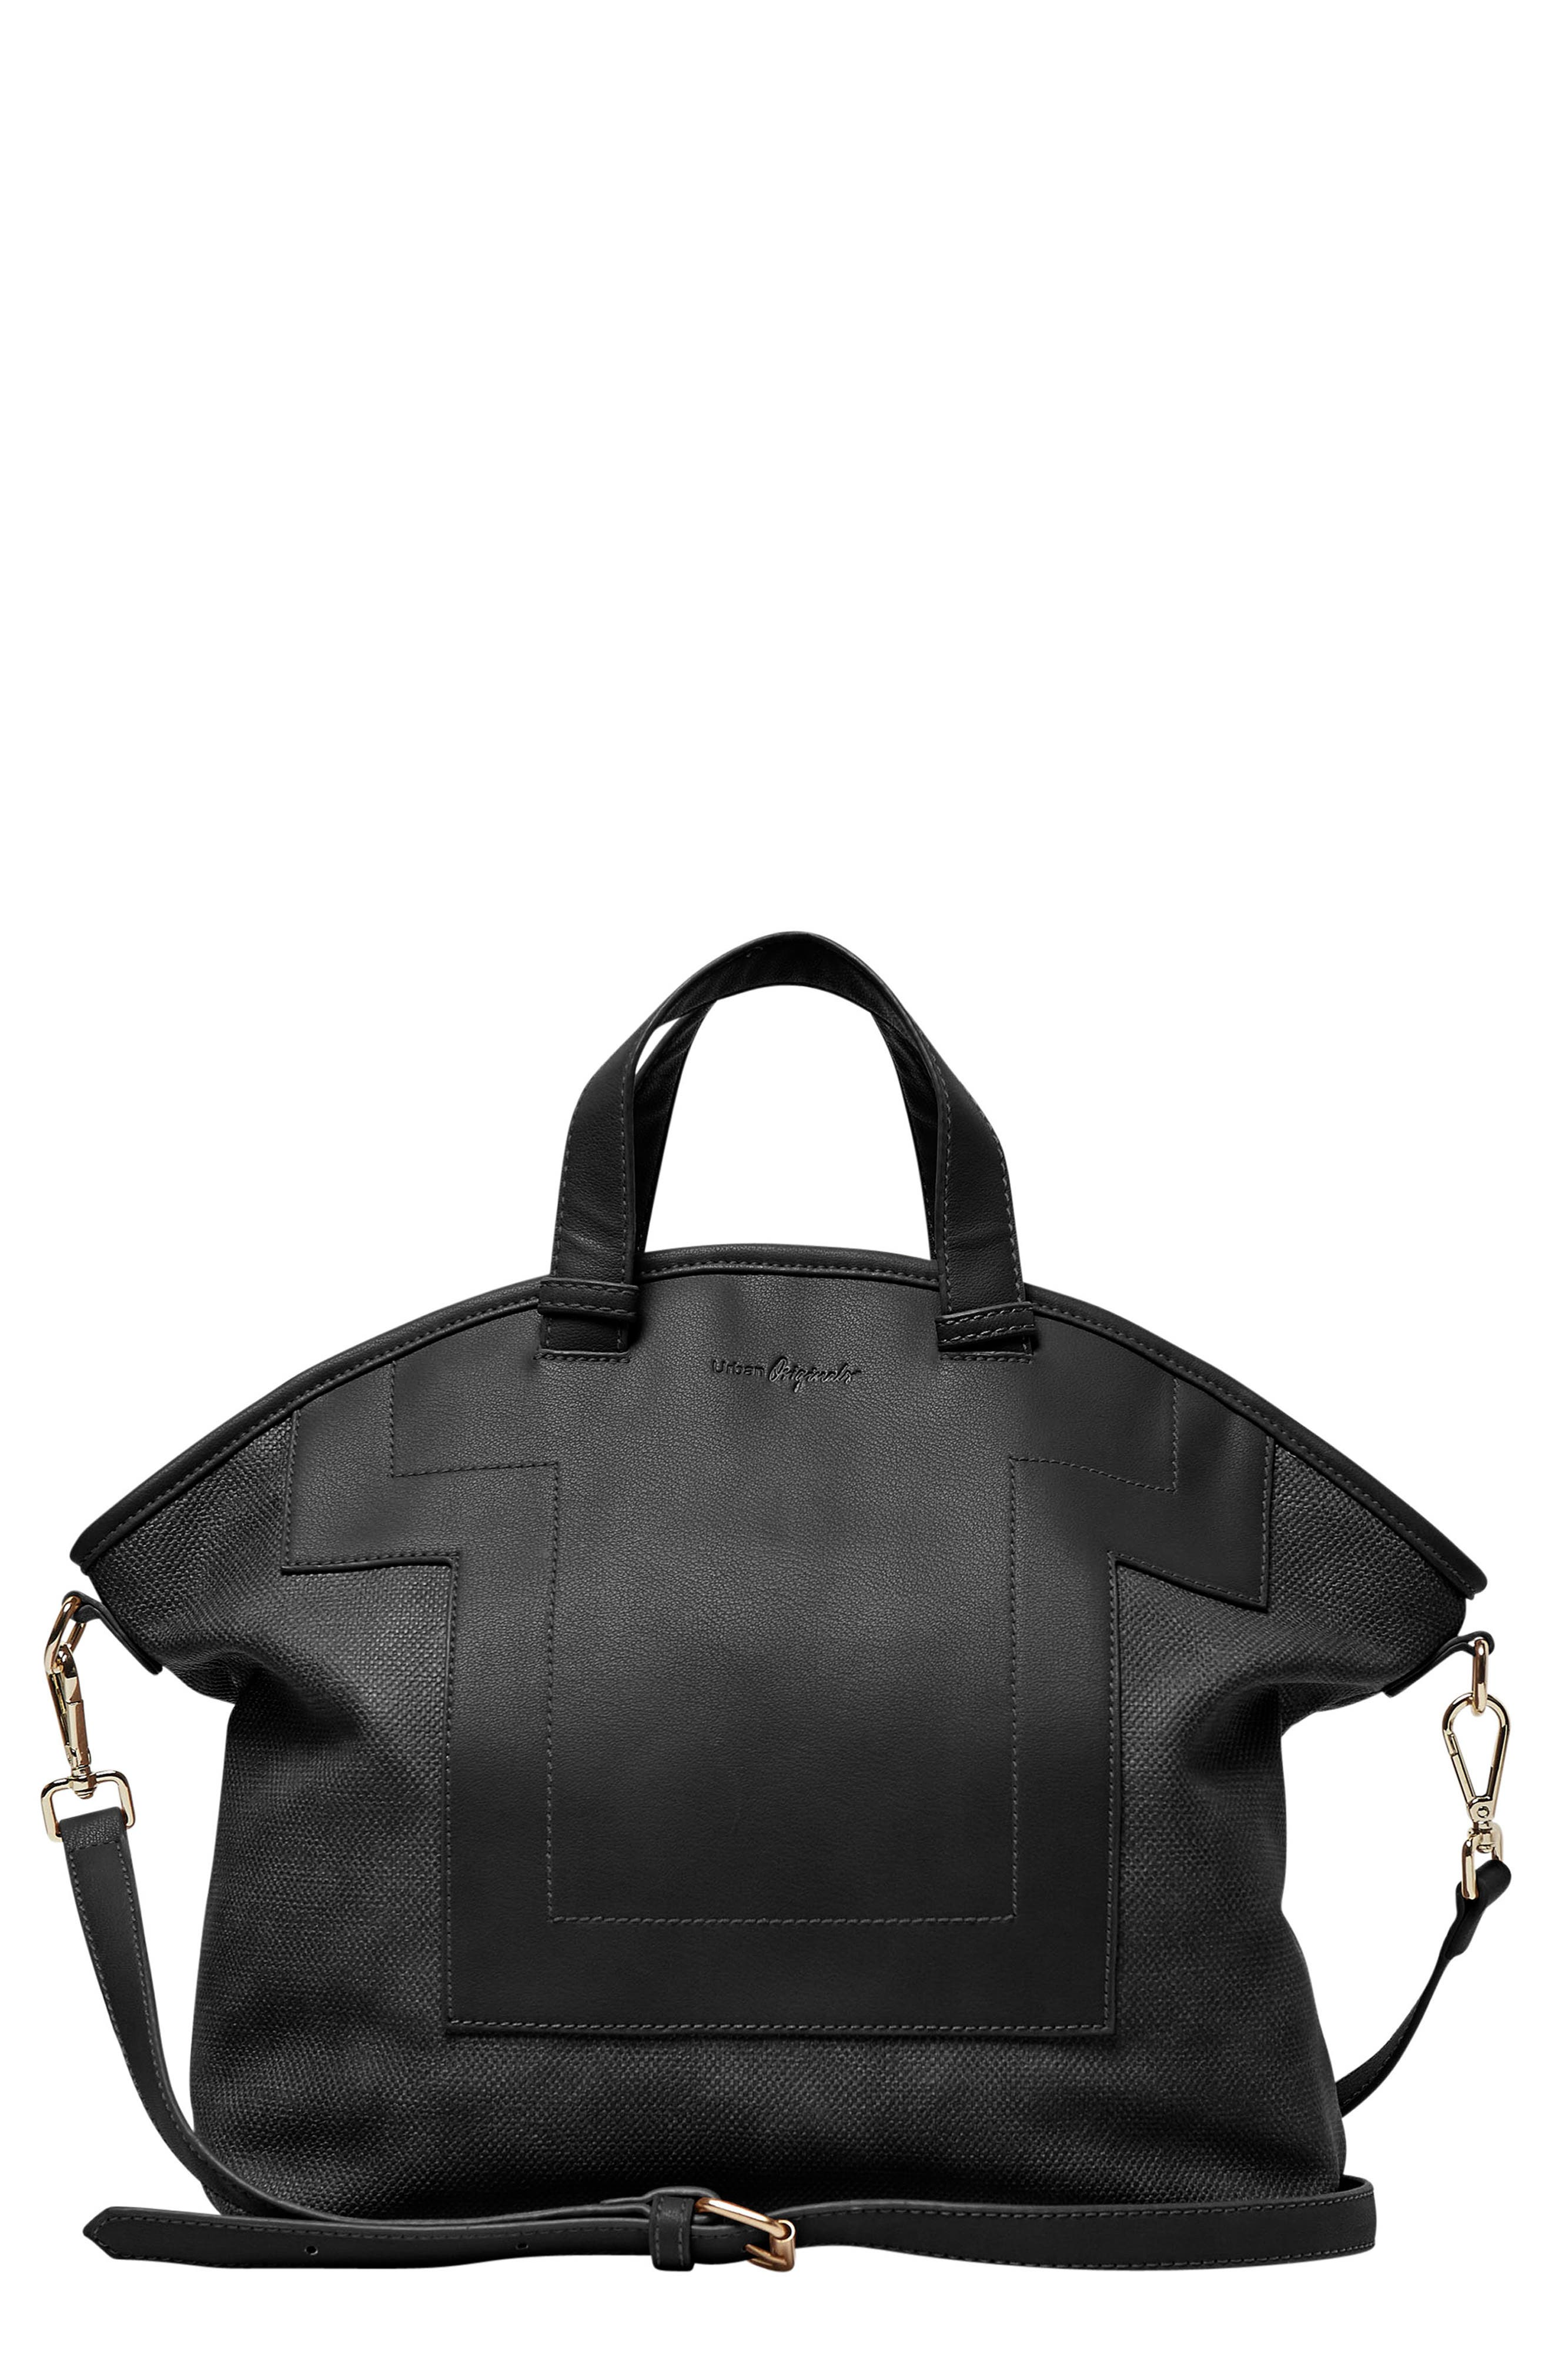 Alternate Image 1 Selected - Urban Originals Break Away Vegan Leather Tote